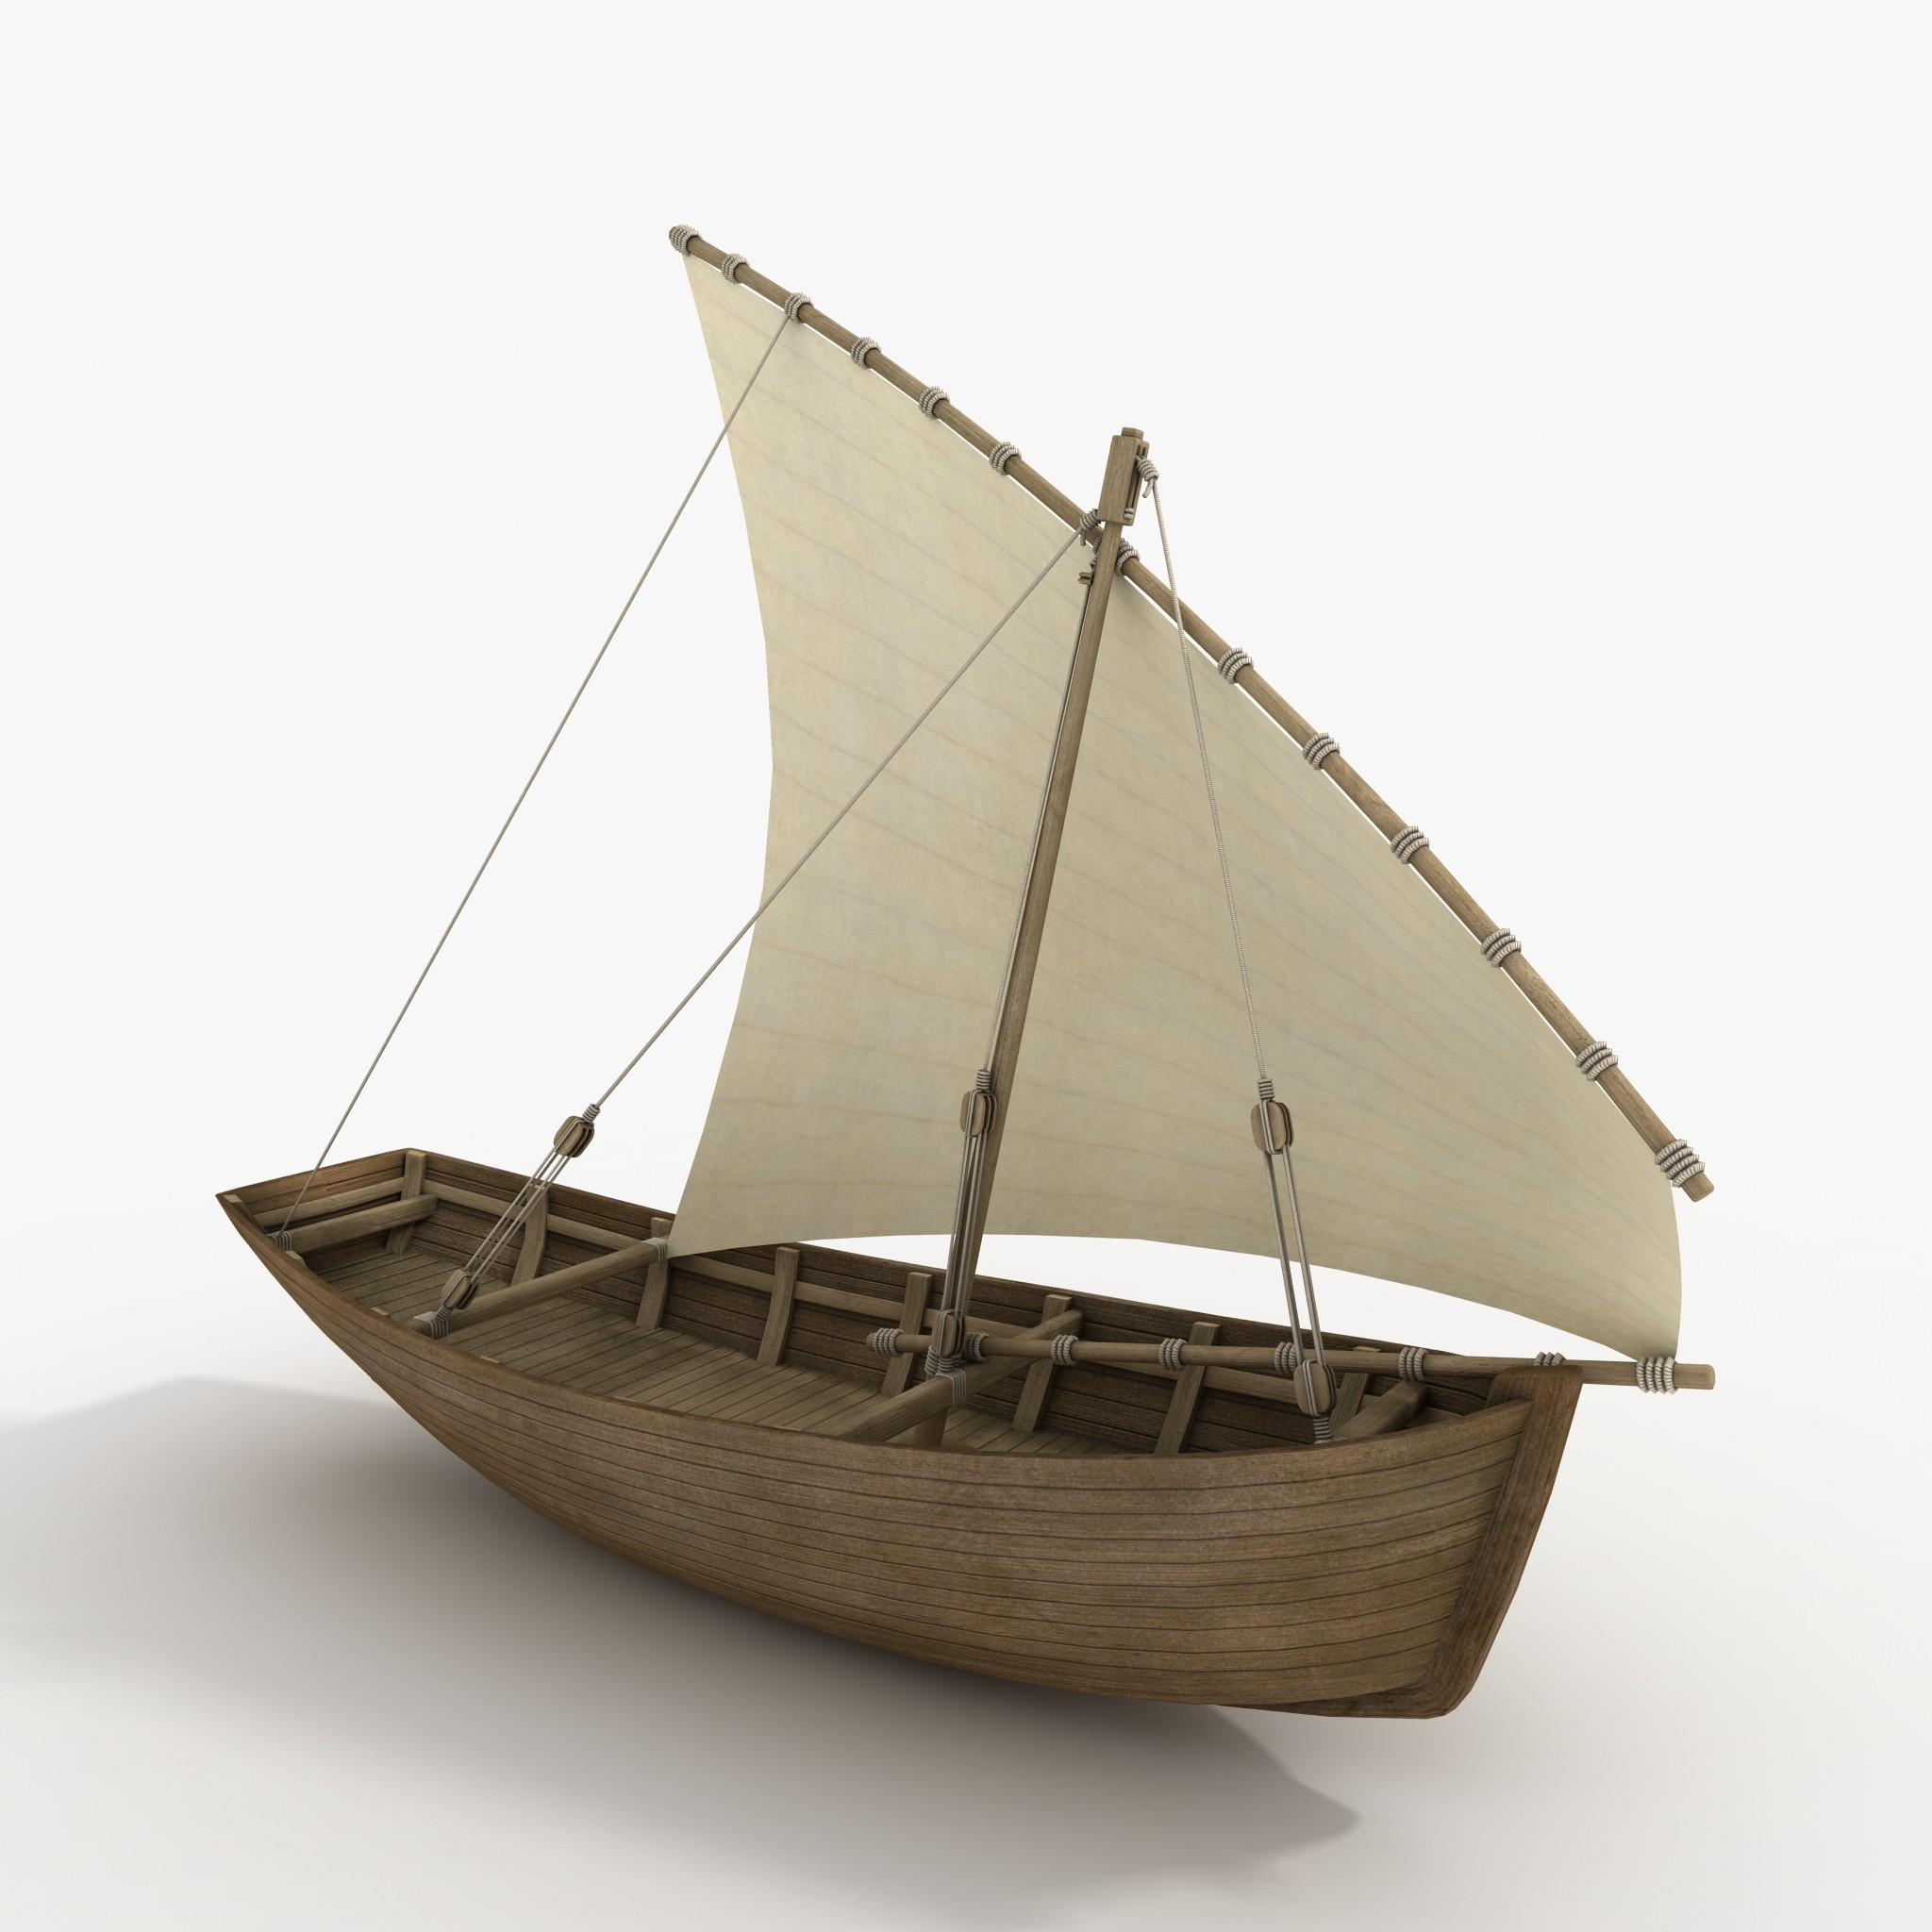 Dhow Boat_Signature Image_VR.jpg